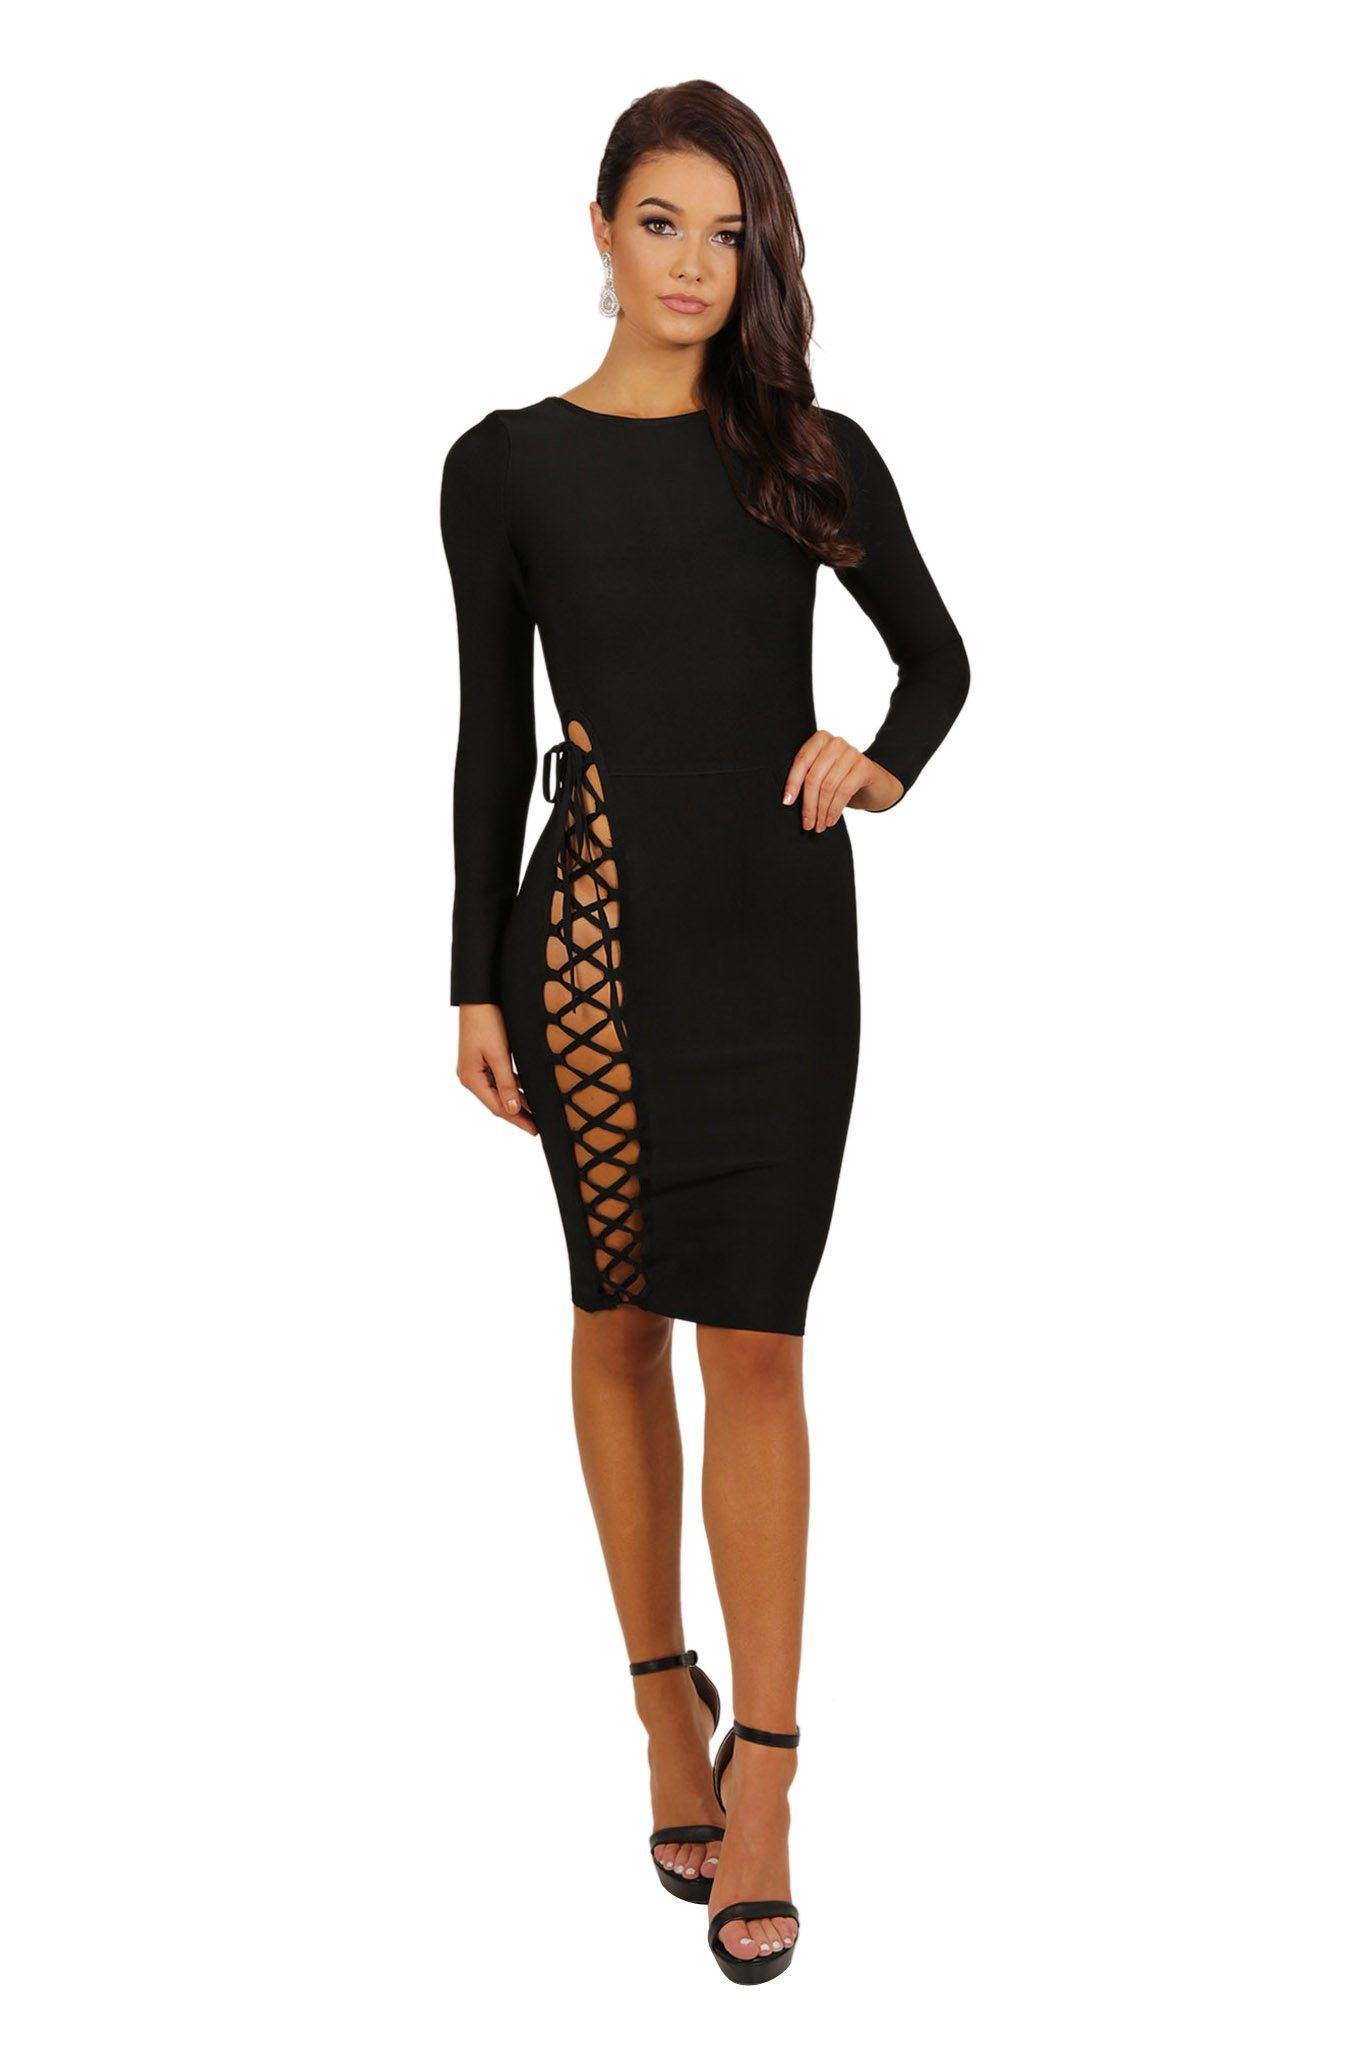 Front of long sleeve knee length form fitted bandage dress with side lace up design from waist to hem in black